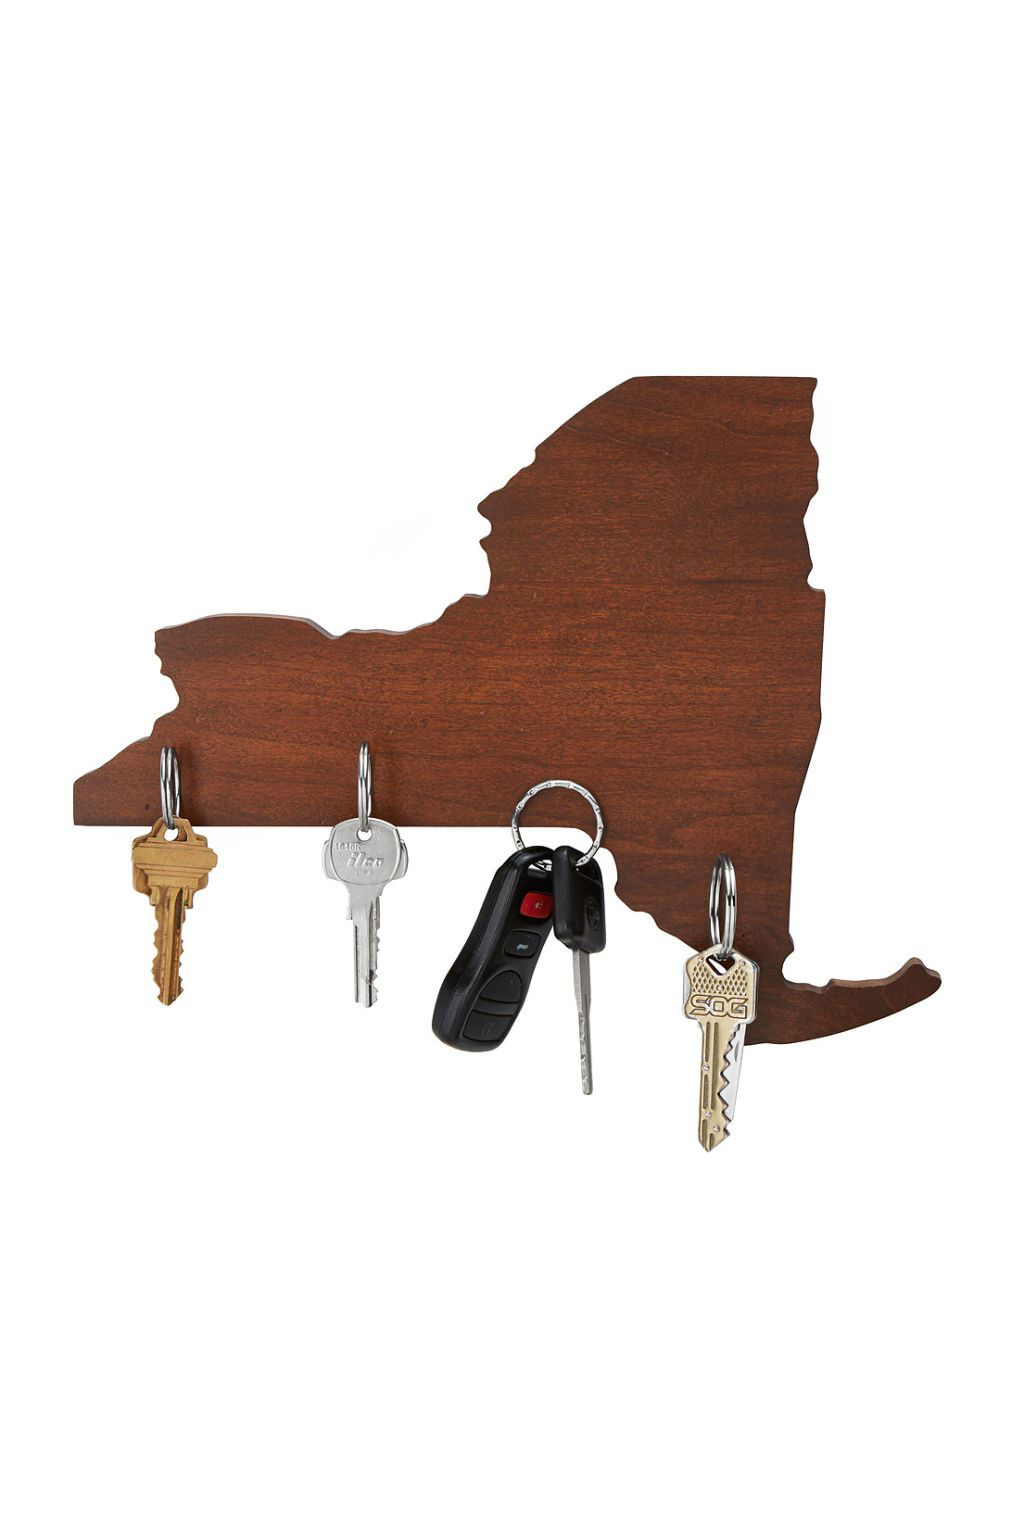 new york key rack